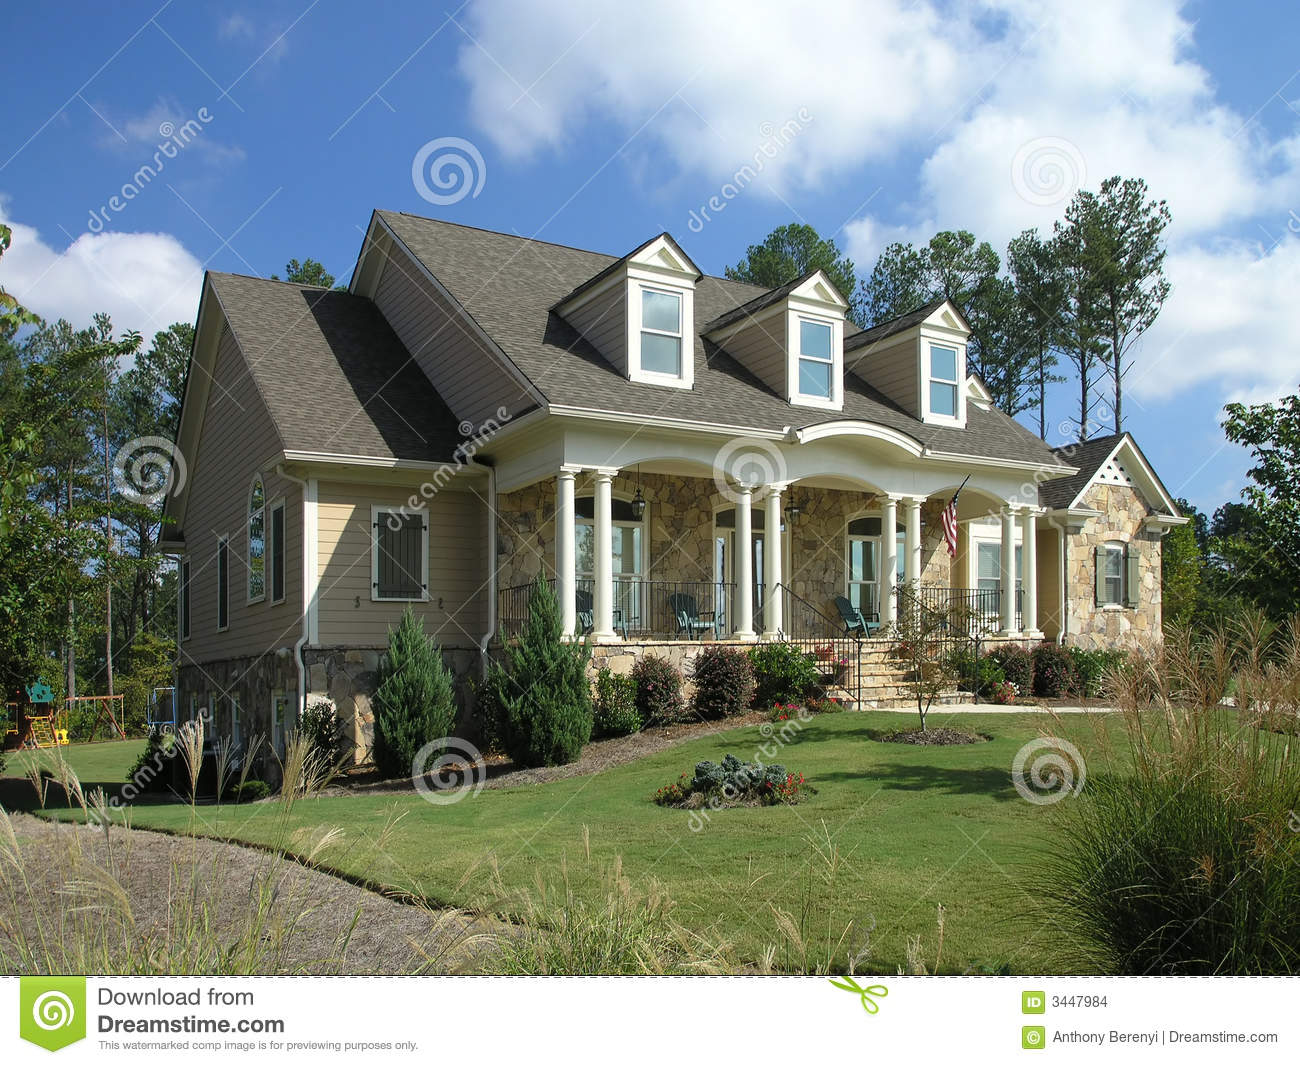 Luxury Home Exterior 27 Stock Images Image 3447984